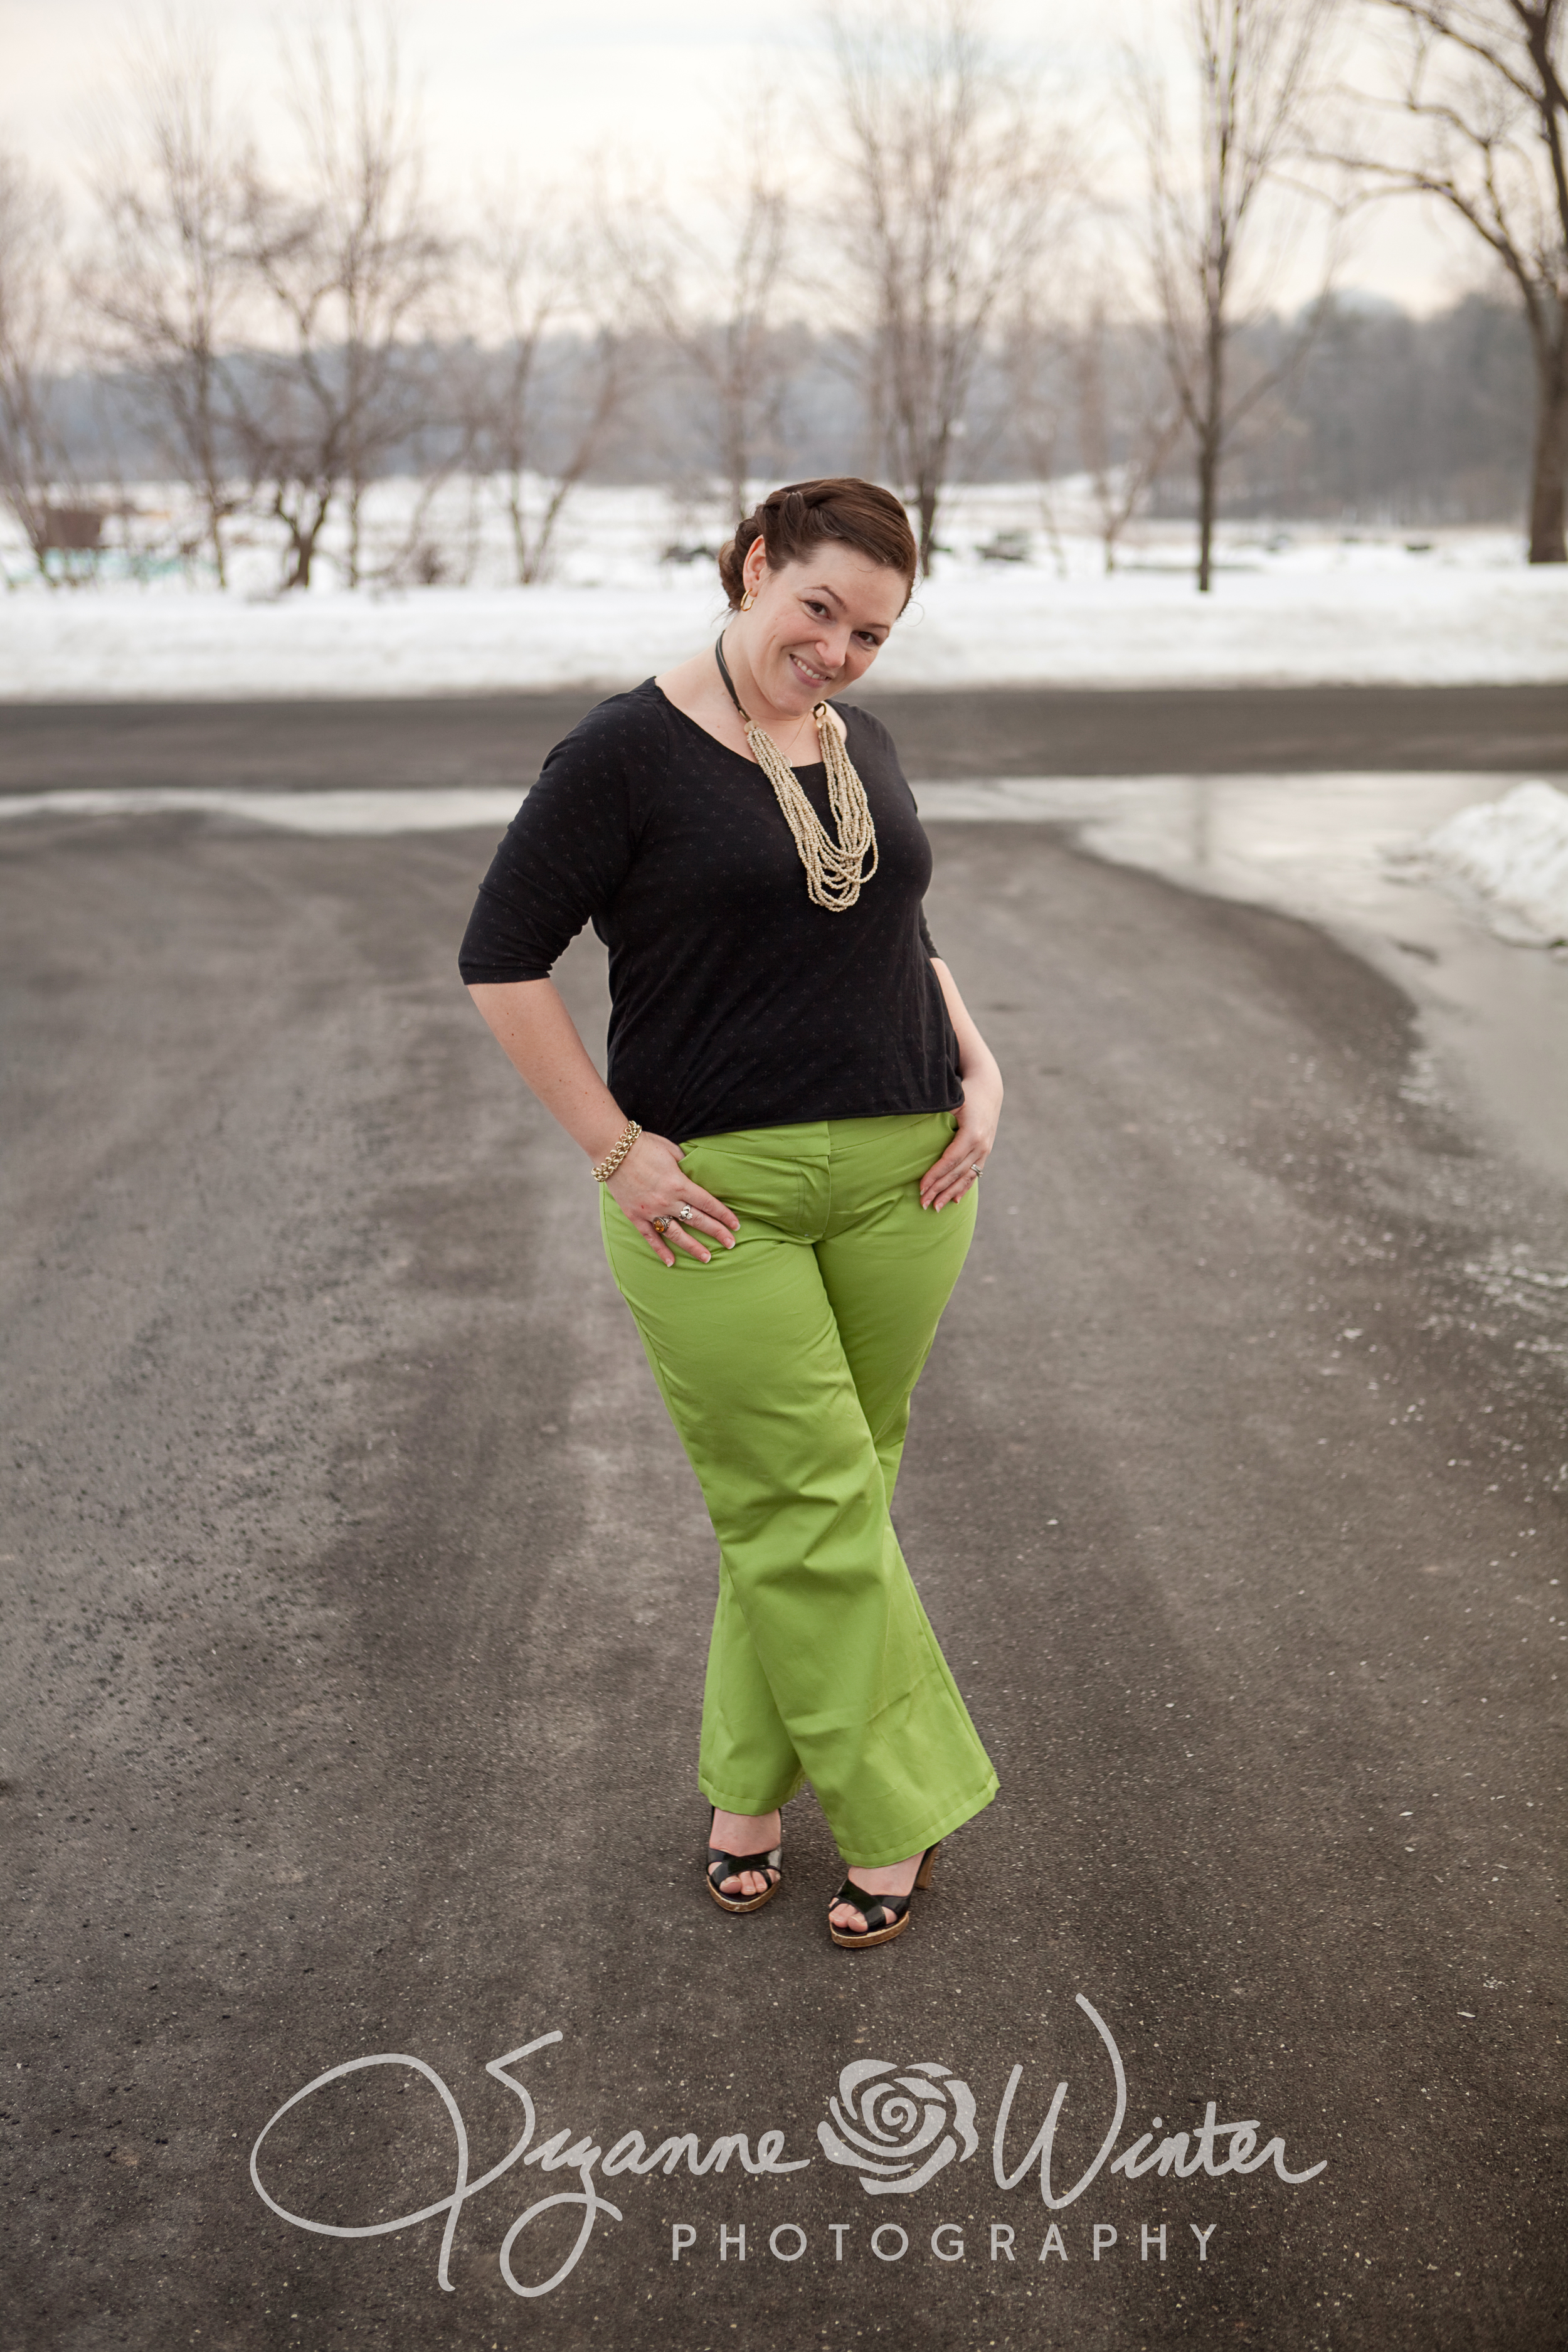 I left some extra room in this shoot since  the snowy gray background was the perfect contrast to the bright pants.